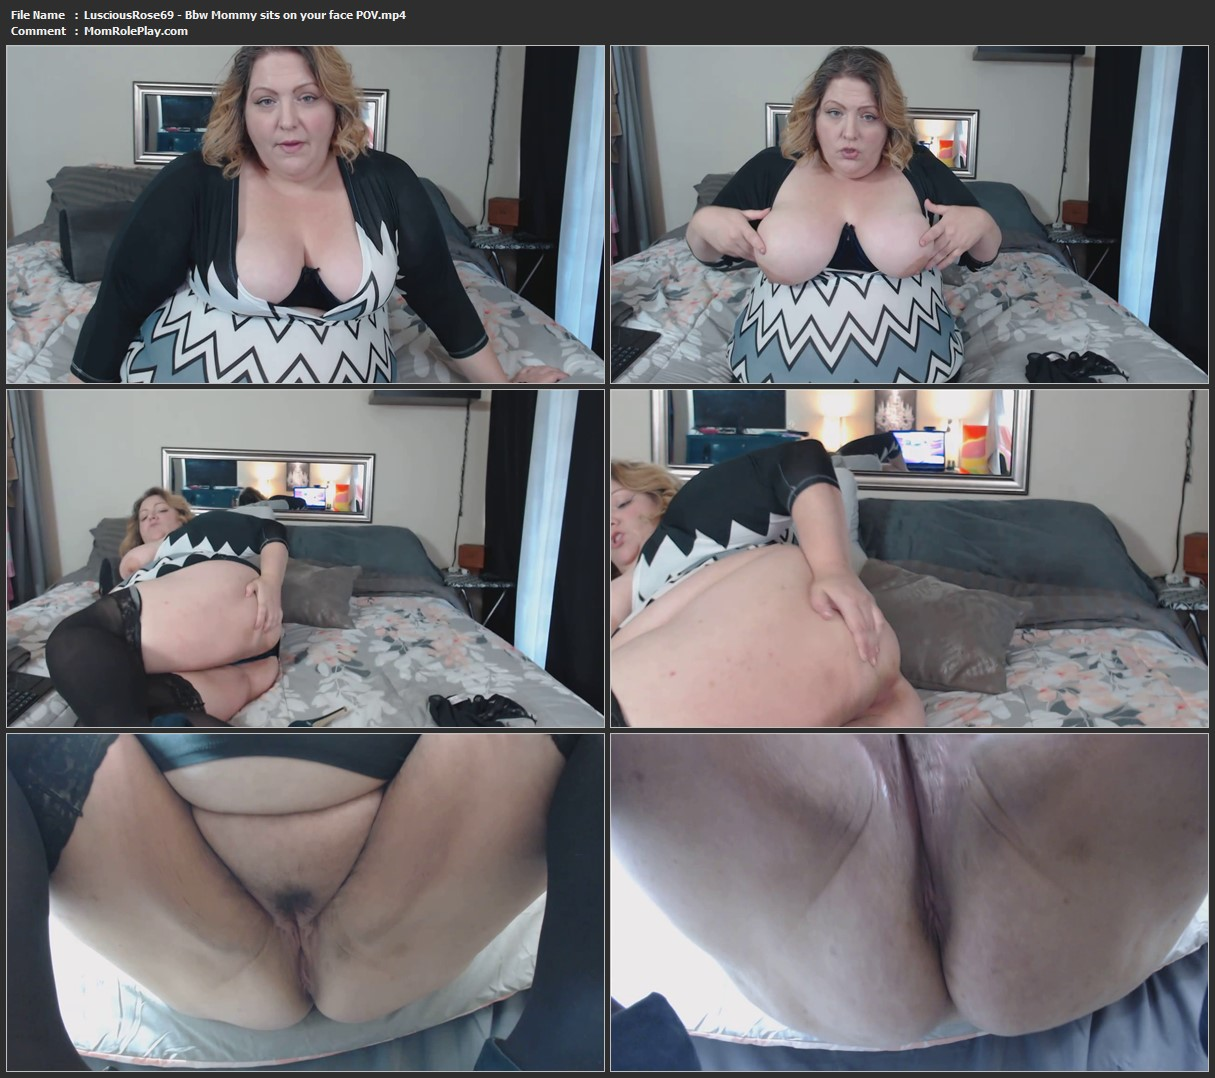 LusciousRose69 - Bbw Mommy sits on your face POV